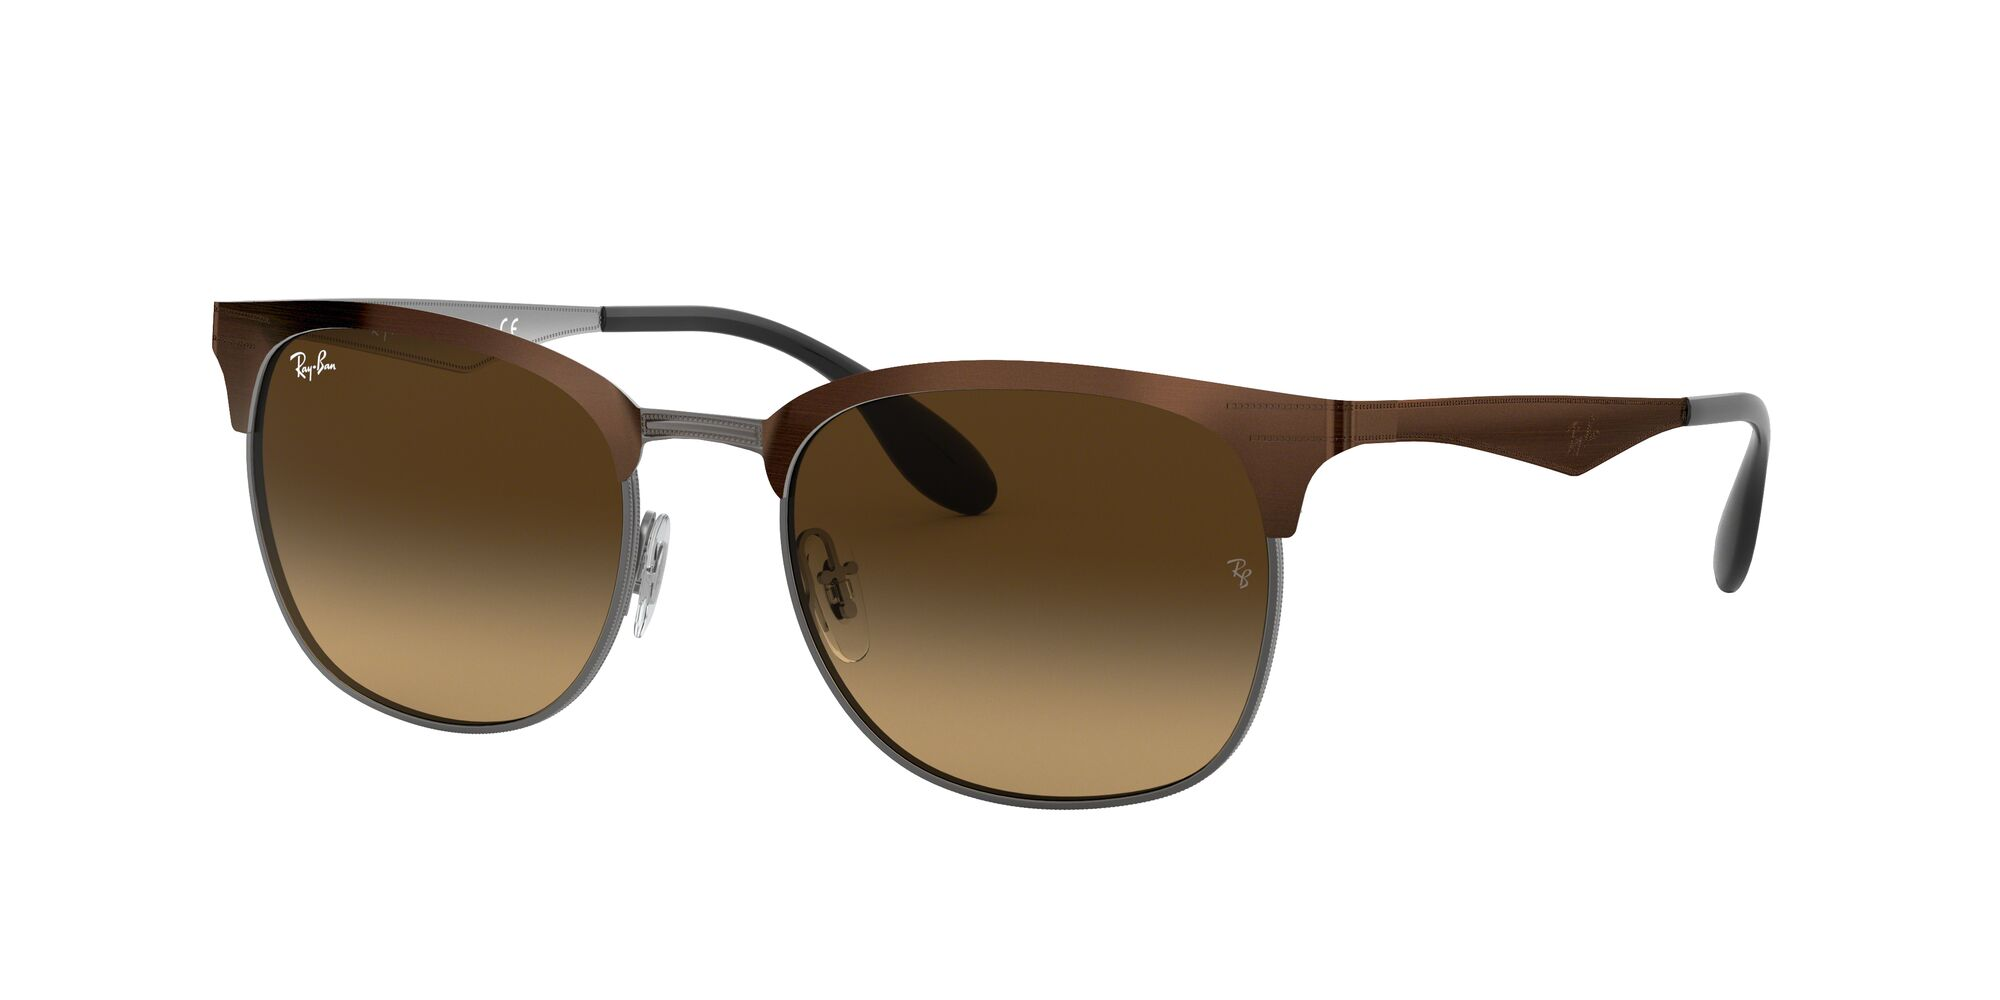 Angle_Left01 Ray-Ban Ray-Ban 0RB3538 188/13 53/19 Bruin, Zilver/Bruin